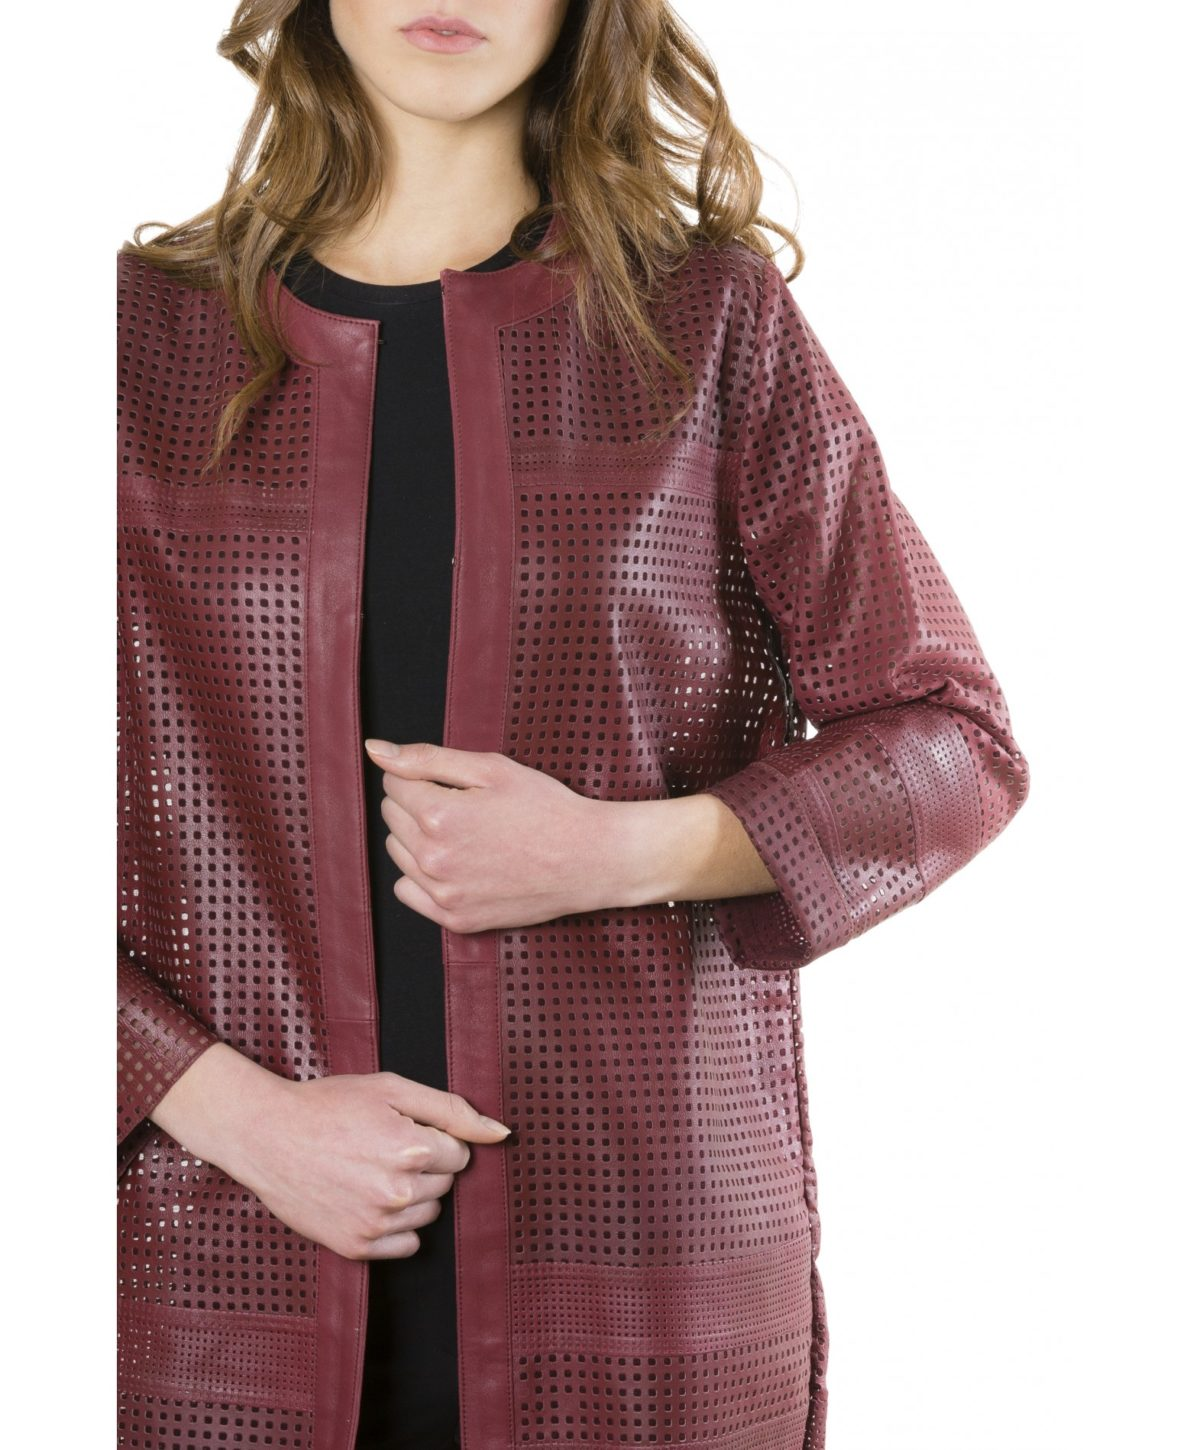 madox-bordeaux-color-lamb-lasered-leather-jacket (4)